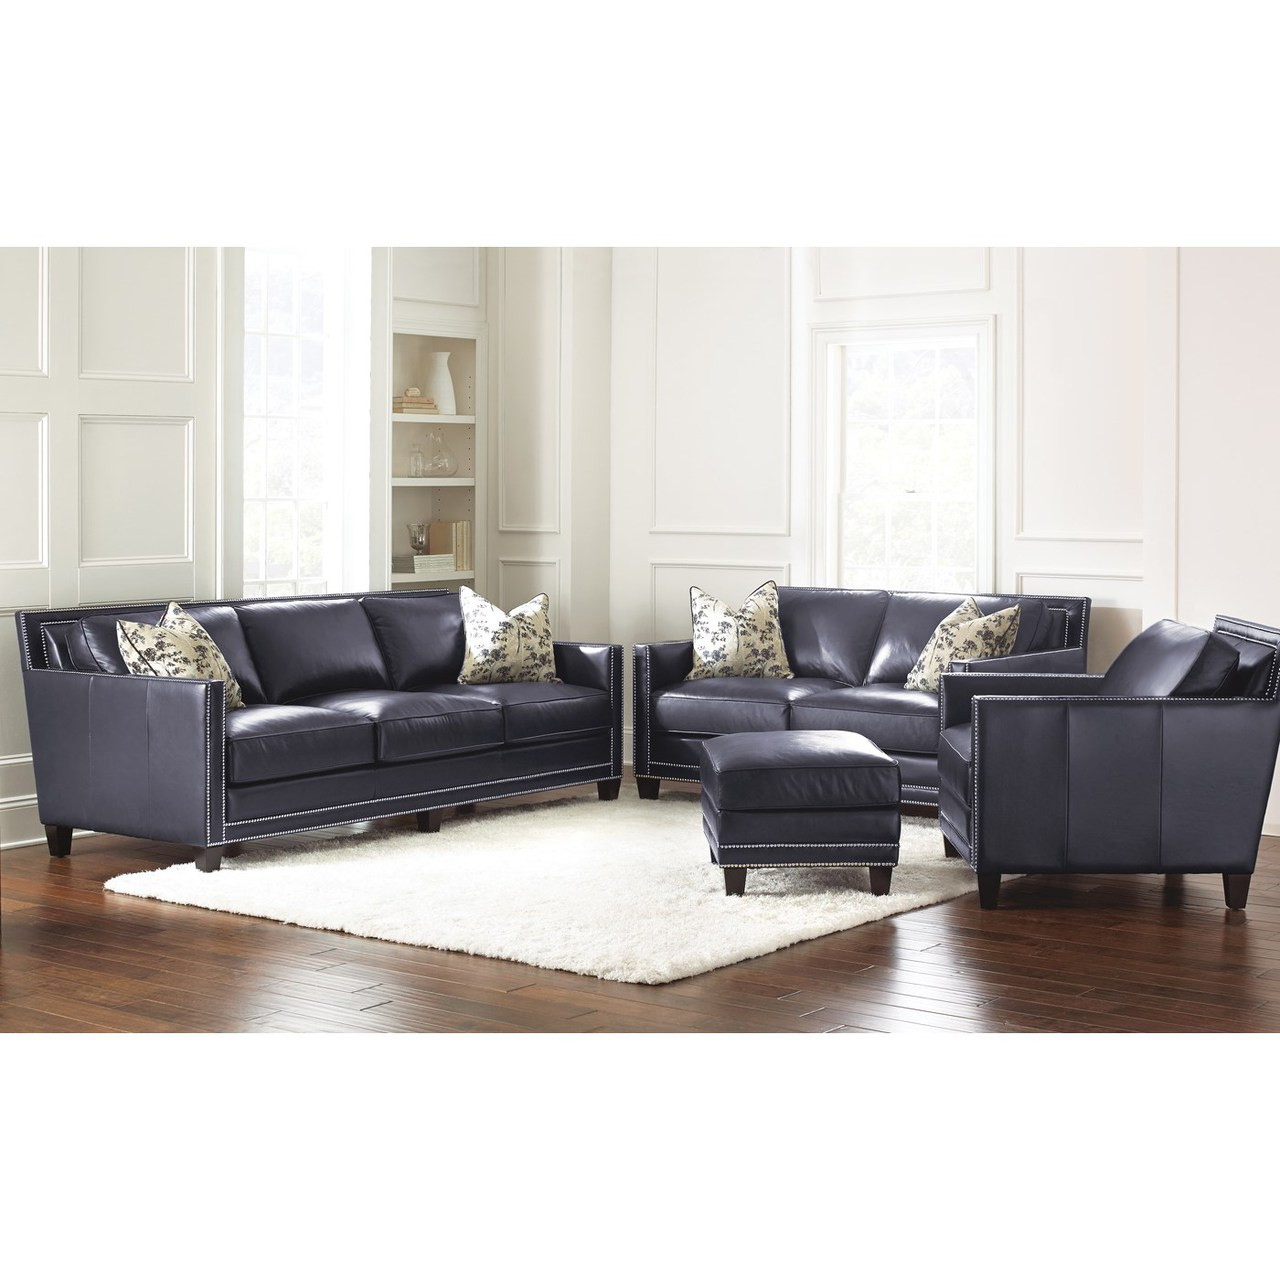 Johnson Navy Blue Sofa & Loveseat - CB Furniture